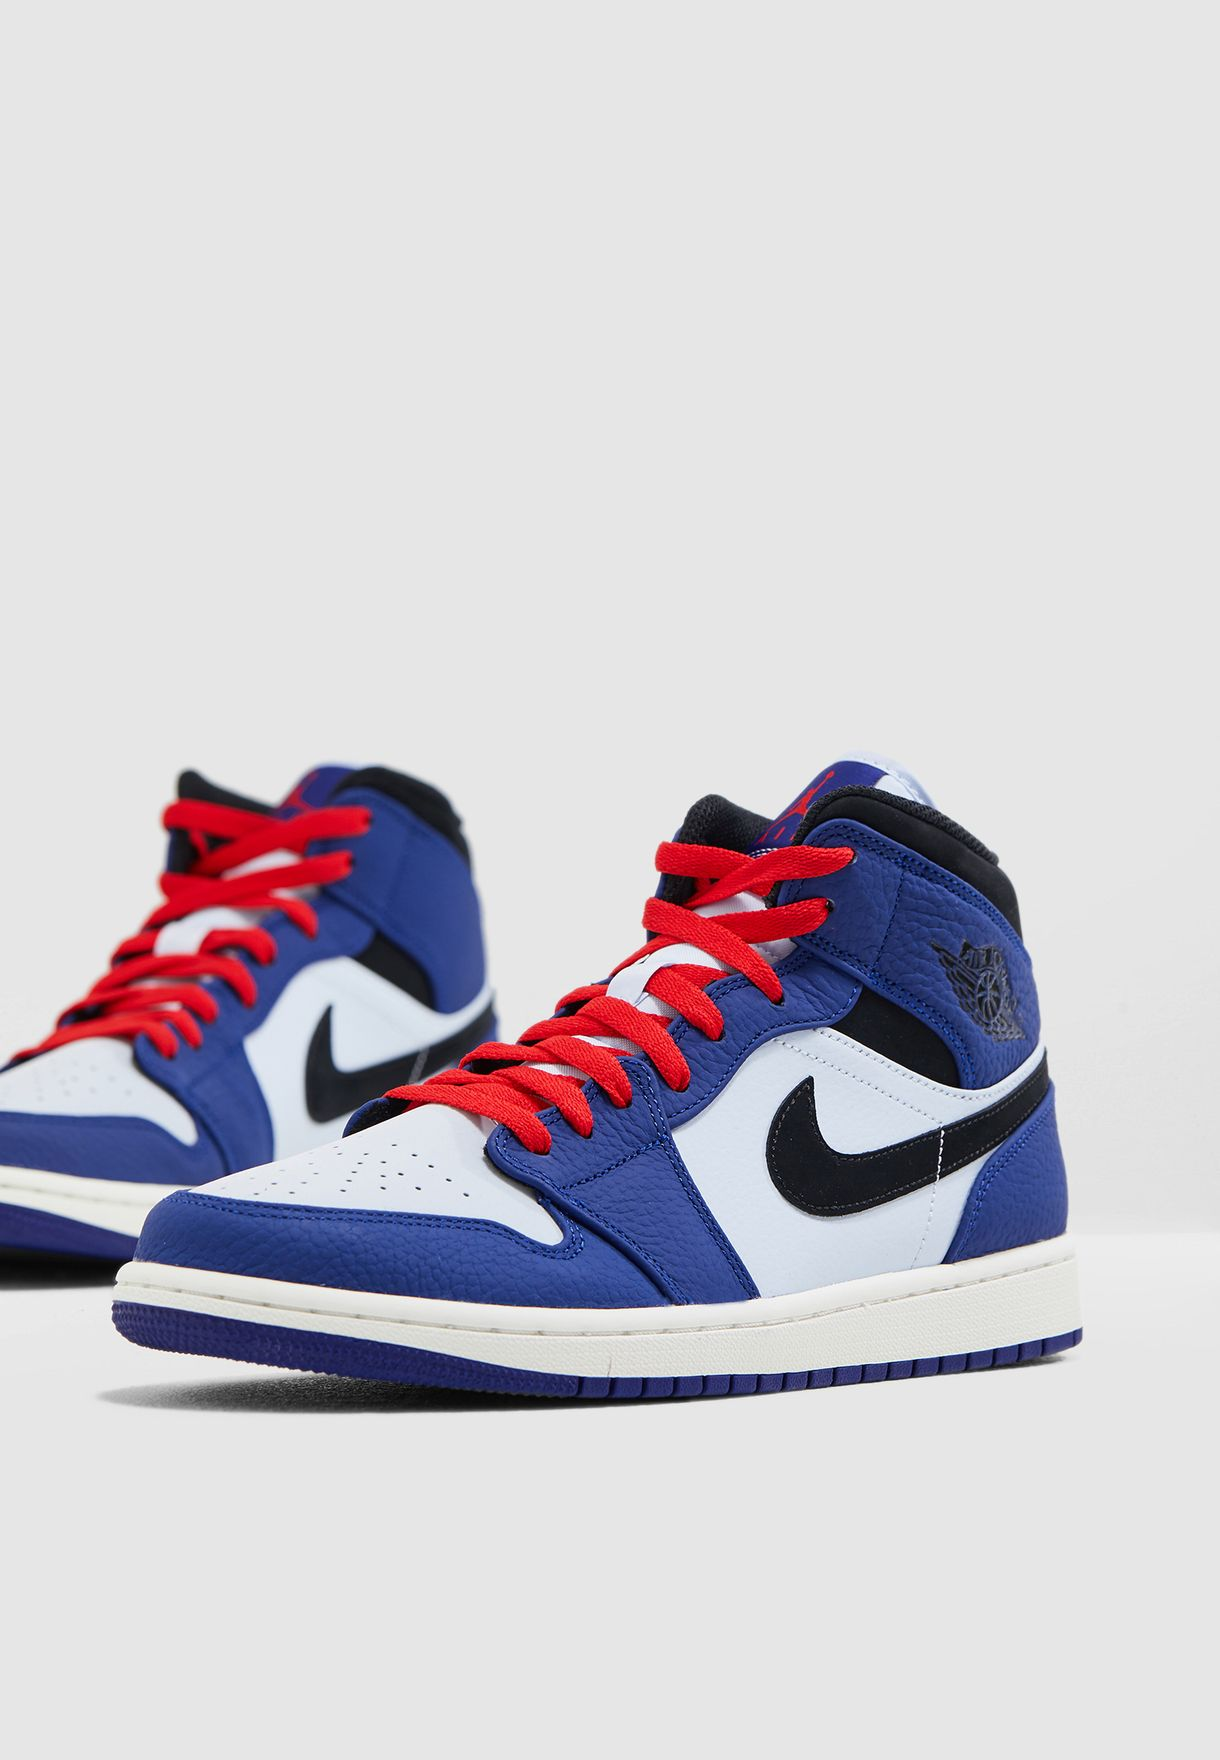 7ca29ec3258 Shop Nike blue Air Jordan 1 Mid SE 852542-400 for Men in Saudi ...